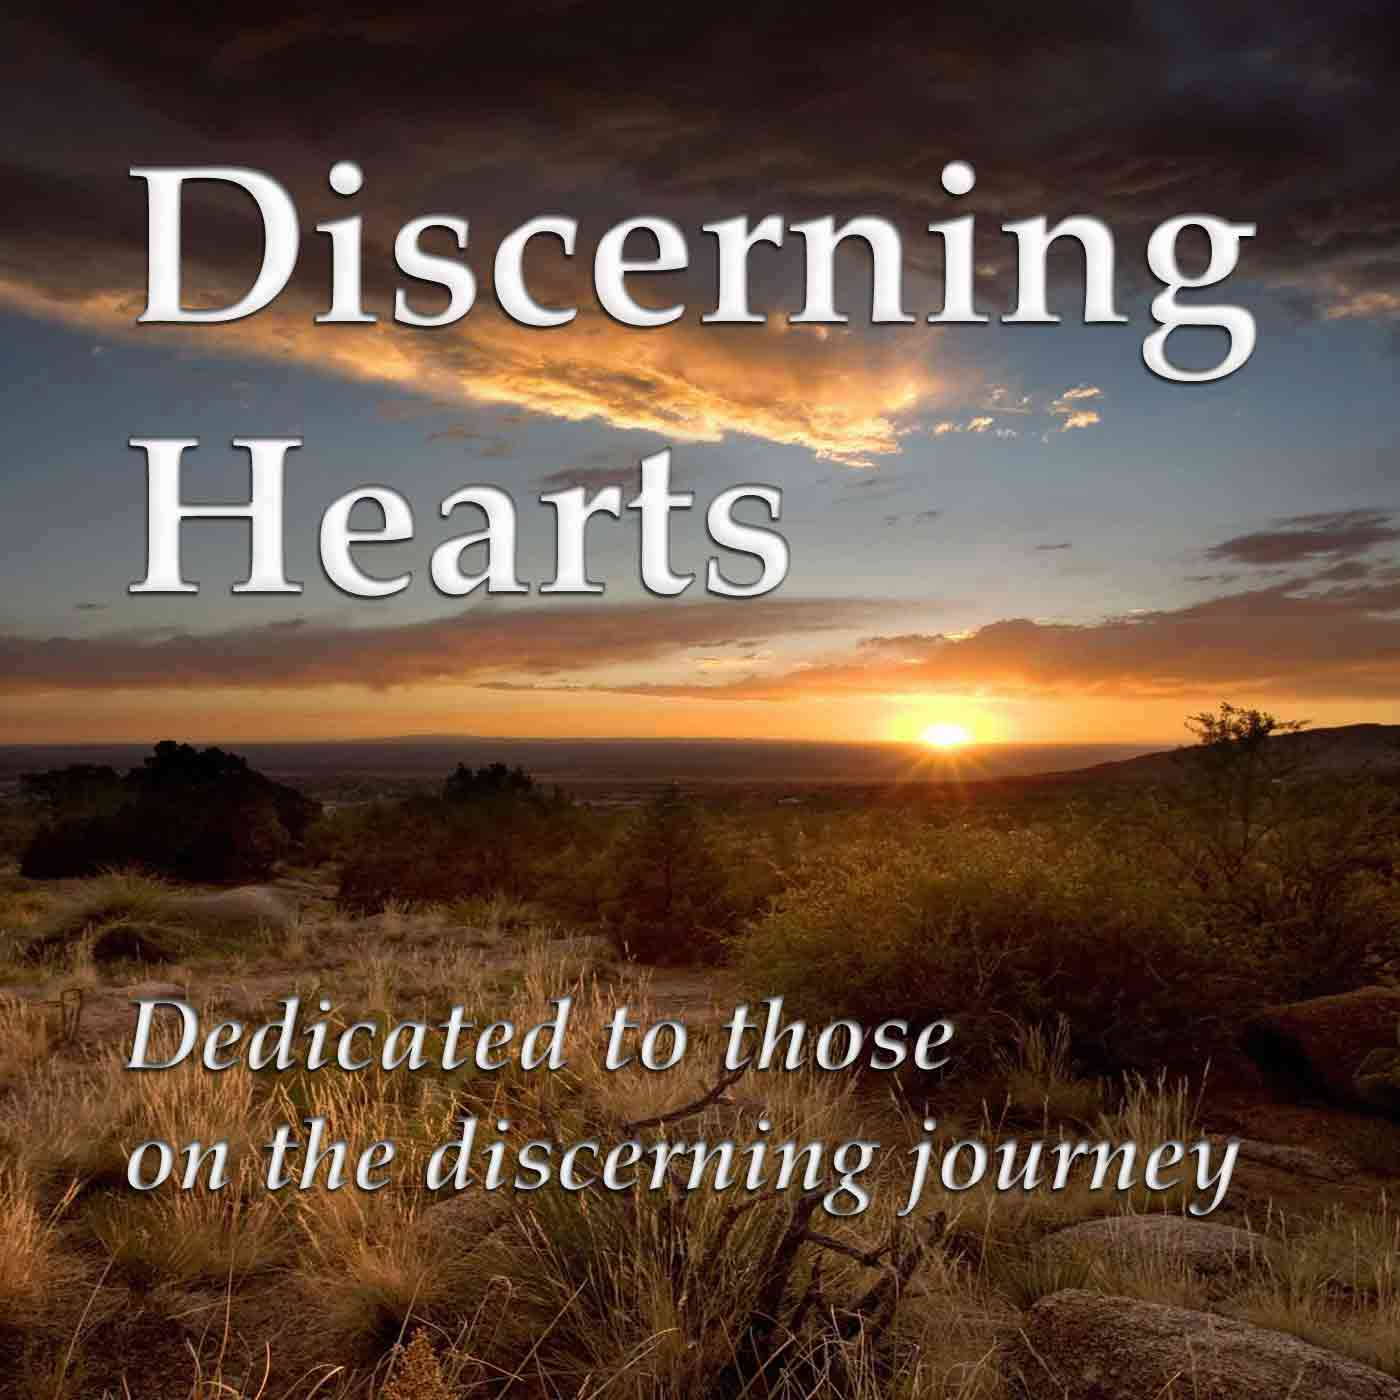 Discerning Hearts 1400